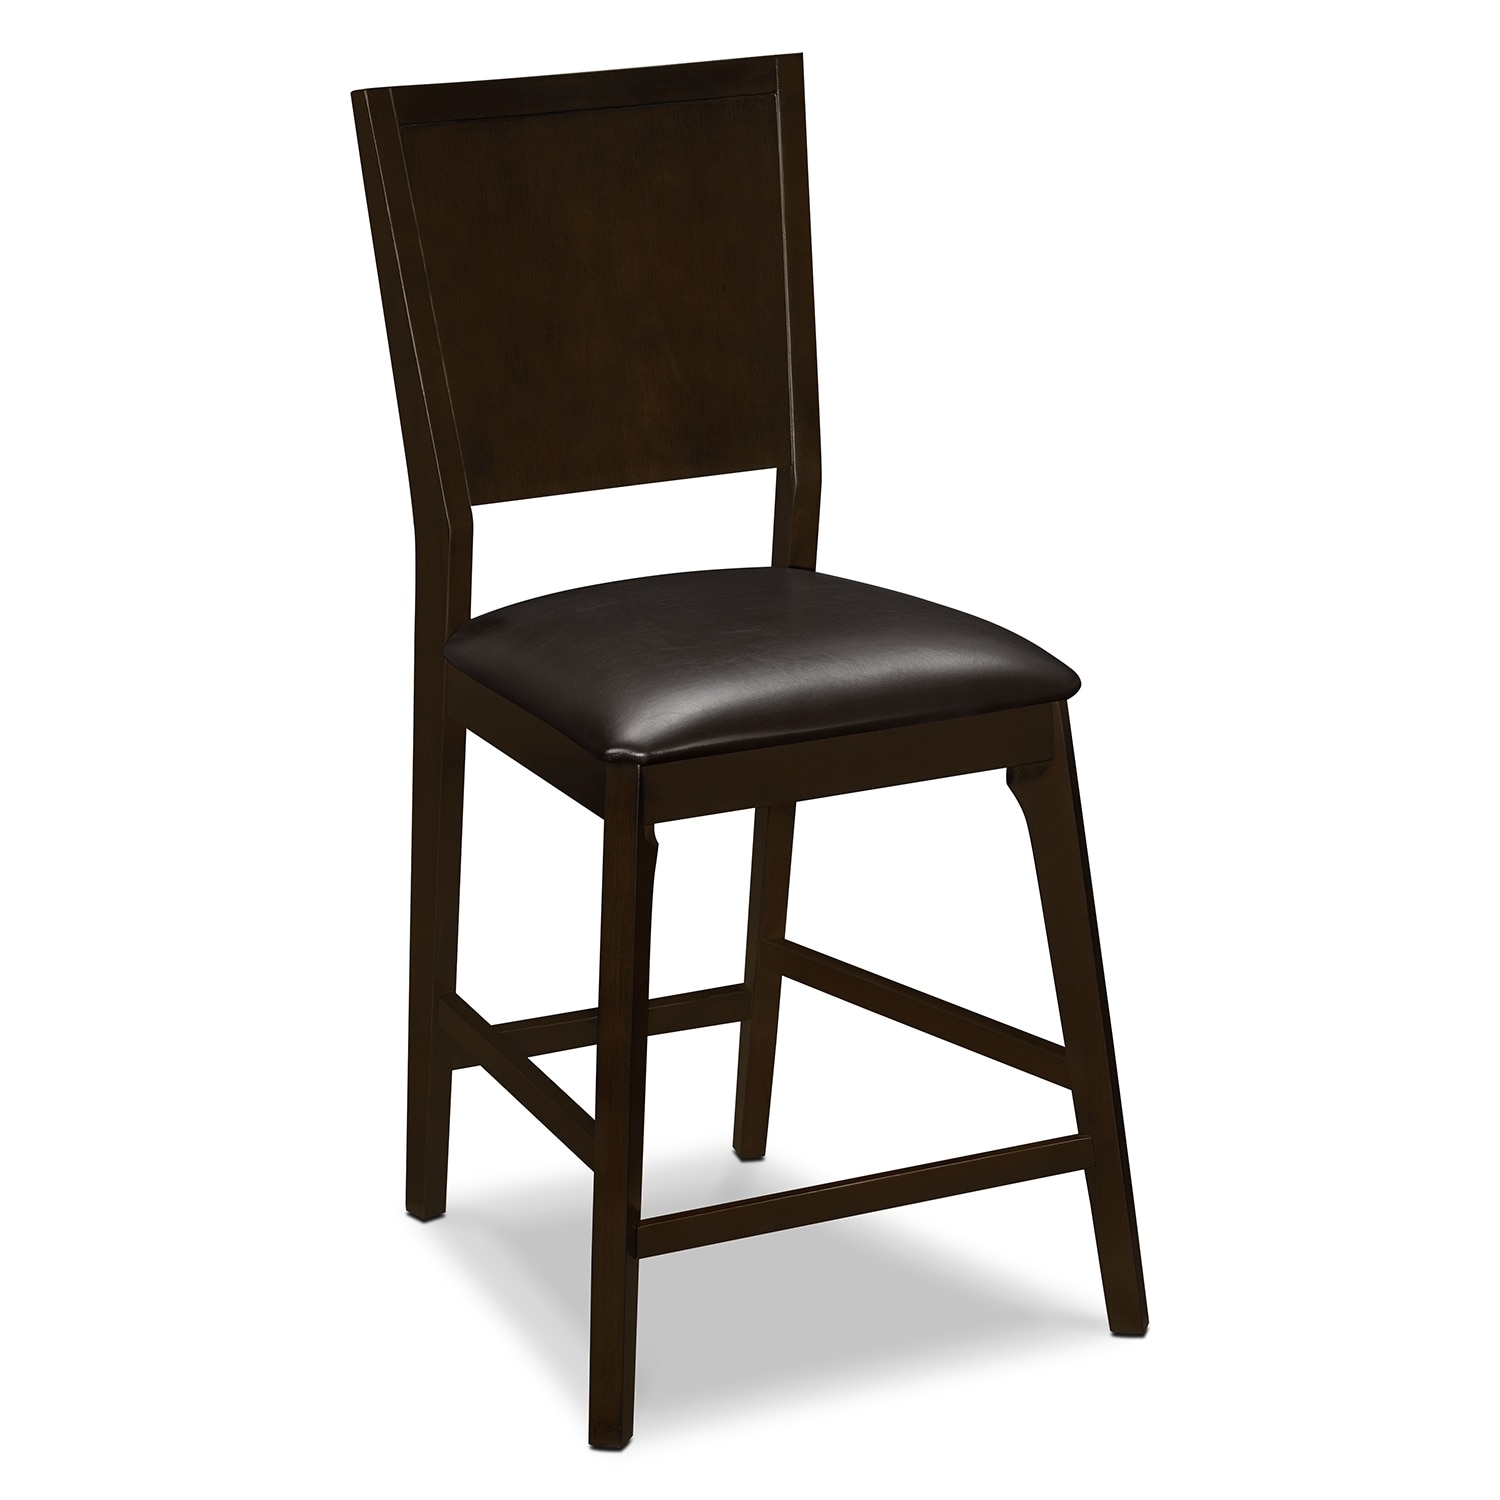 Dining Room Furniture - Mystic Counter-Height Stool - Merlot and Chocolate